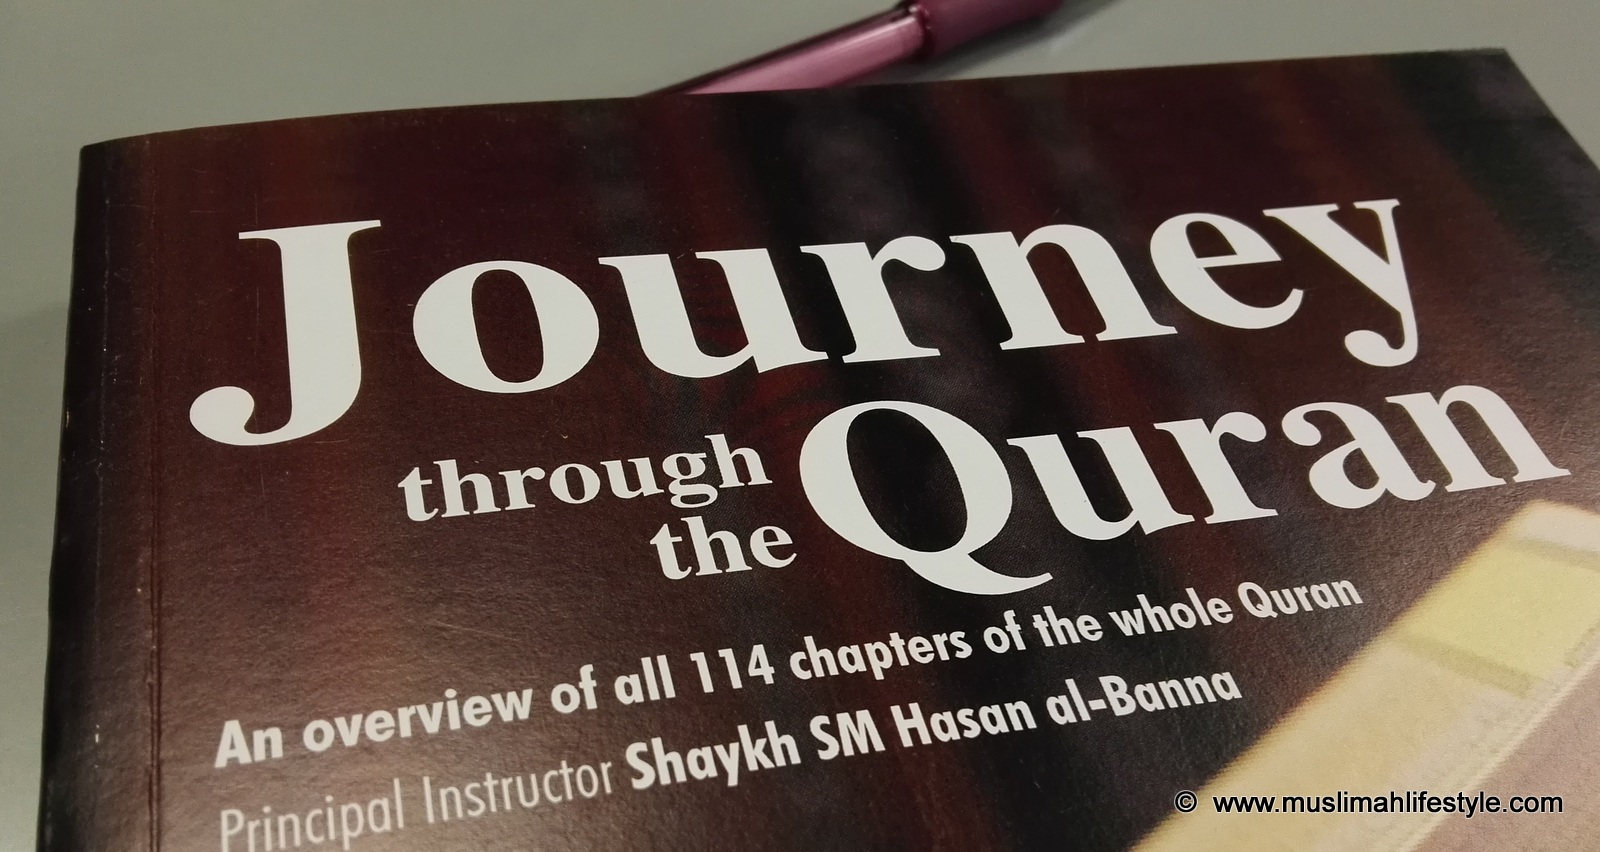 Journey Through the Quraan – Convention Review